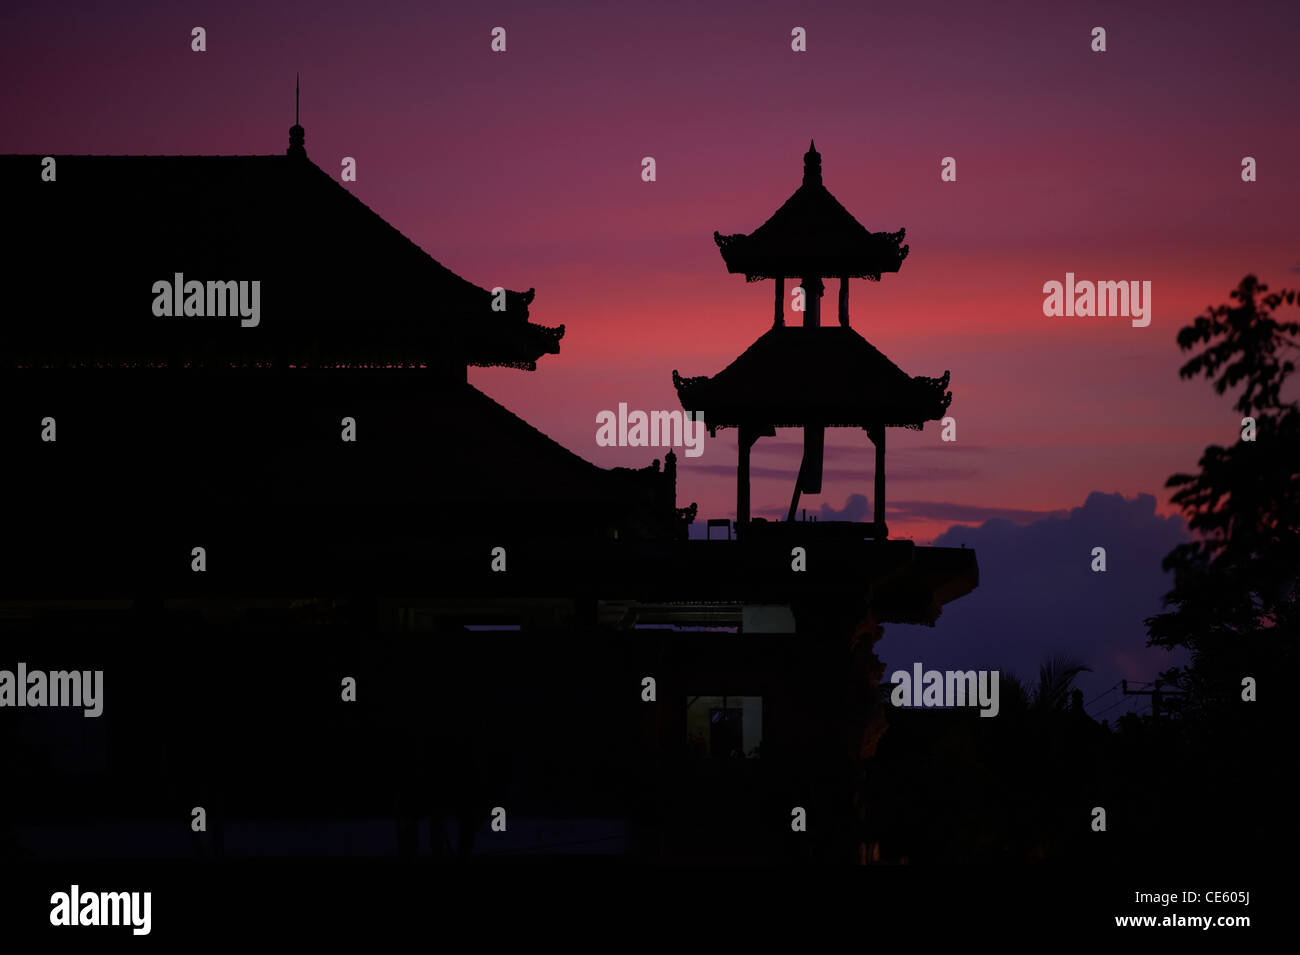 Hindu temple silhouetted in dusk sky, Ubud Bali Indonesia - Stock Image